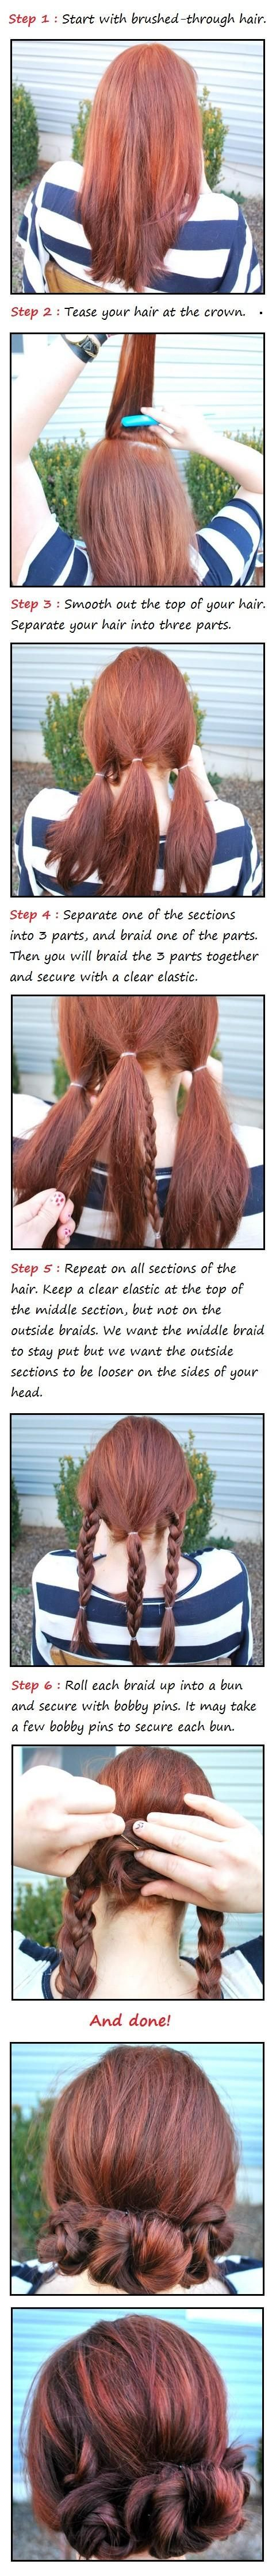 best hairstyles images on pinterest grey hair going gray and